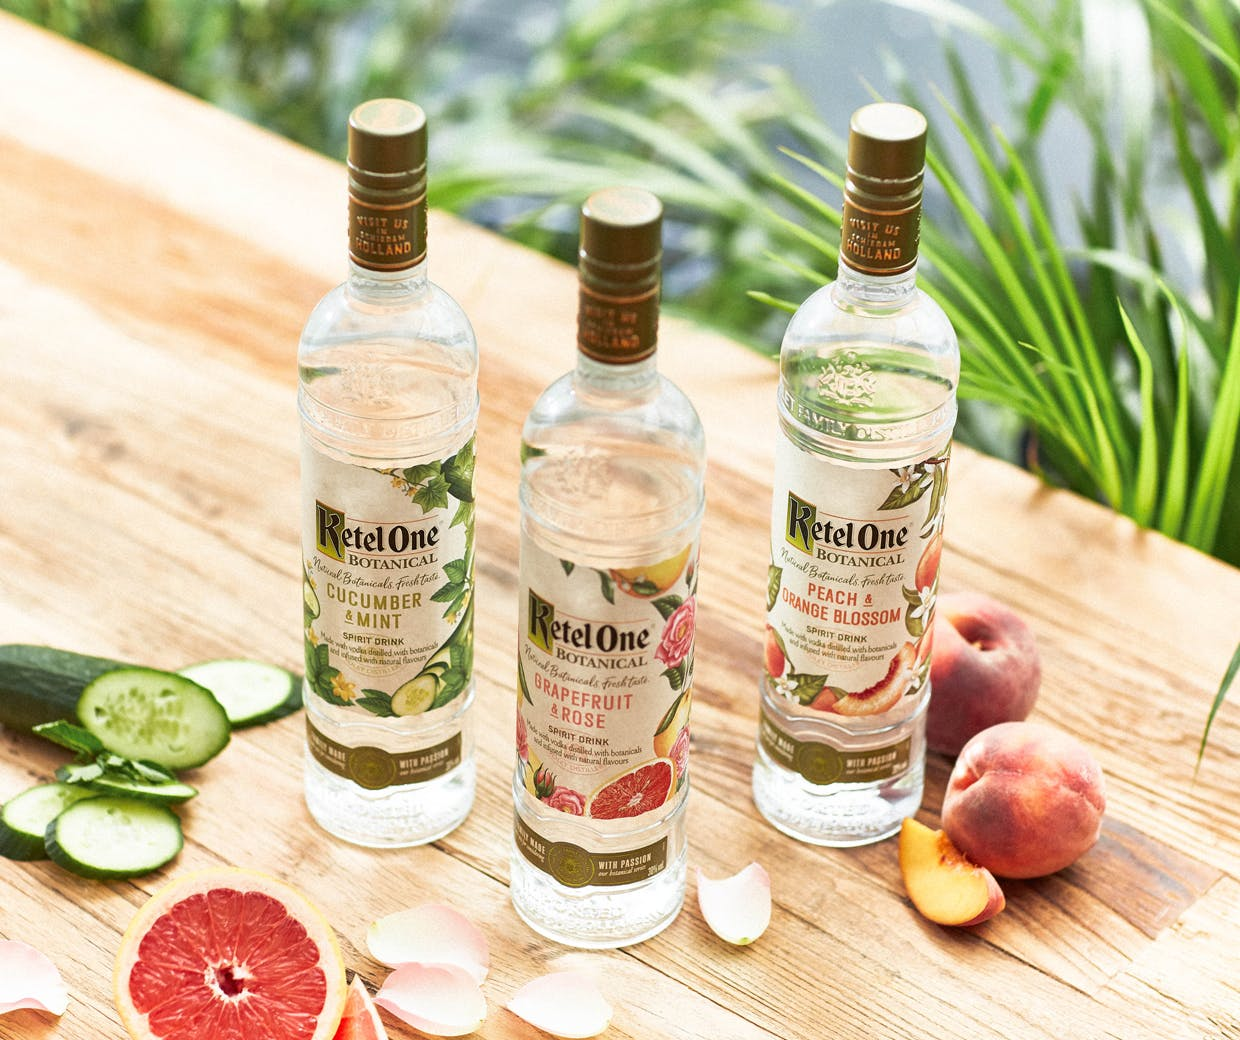 Diageo wants to make lower calorie alcohol 'interesting' with premium flavoured spirits